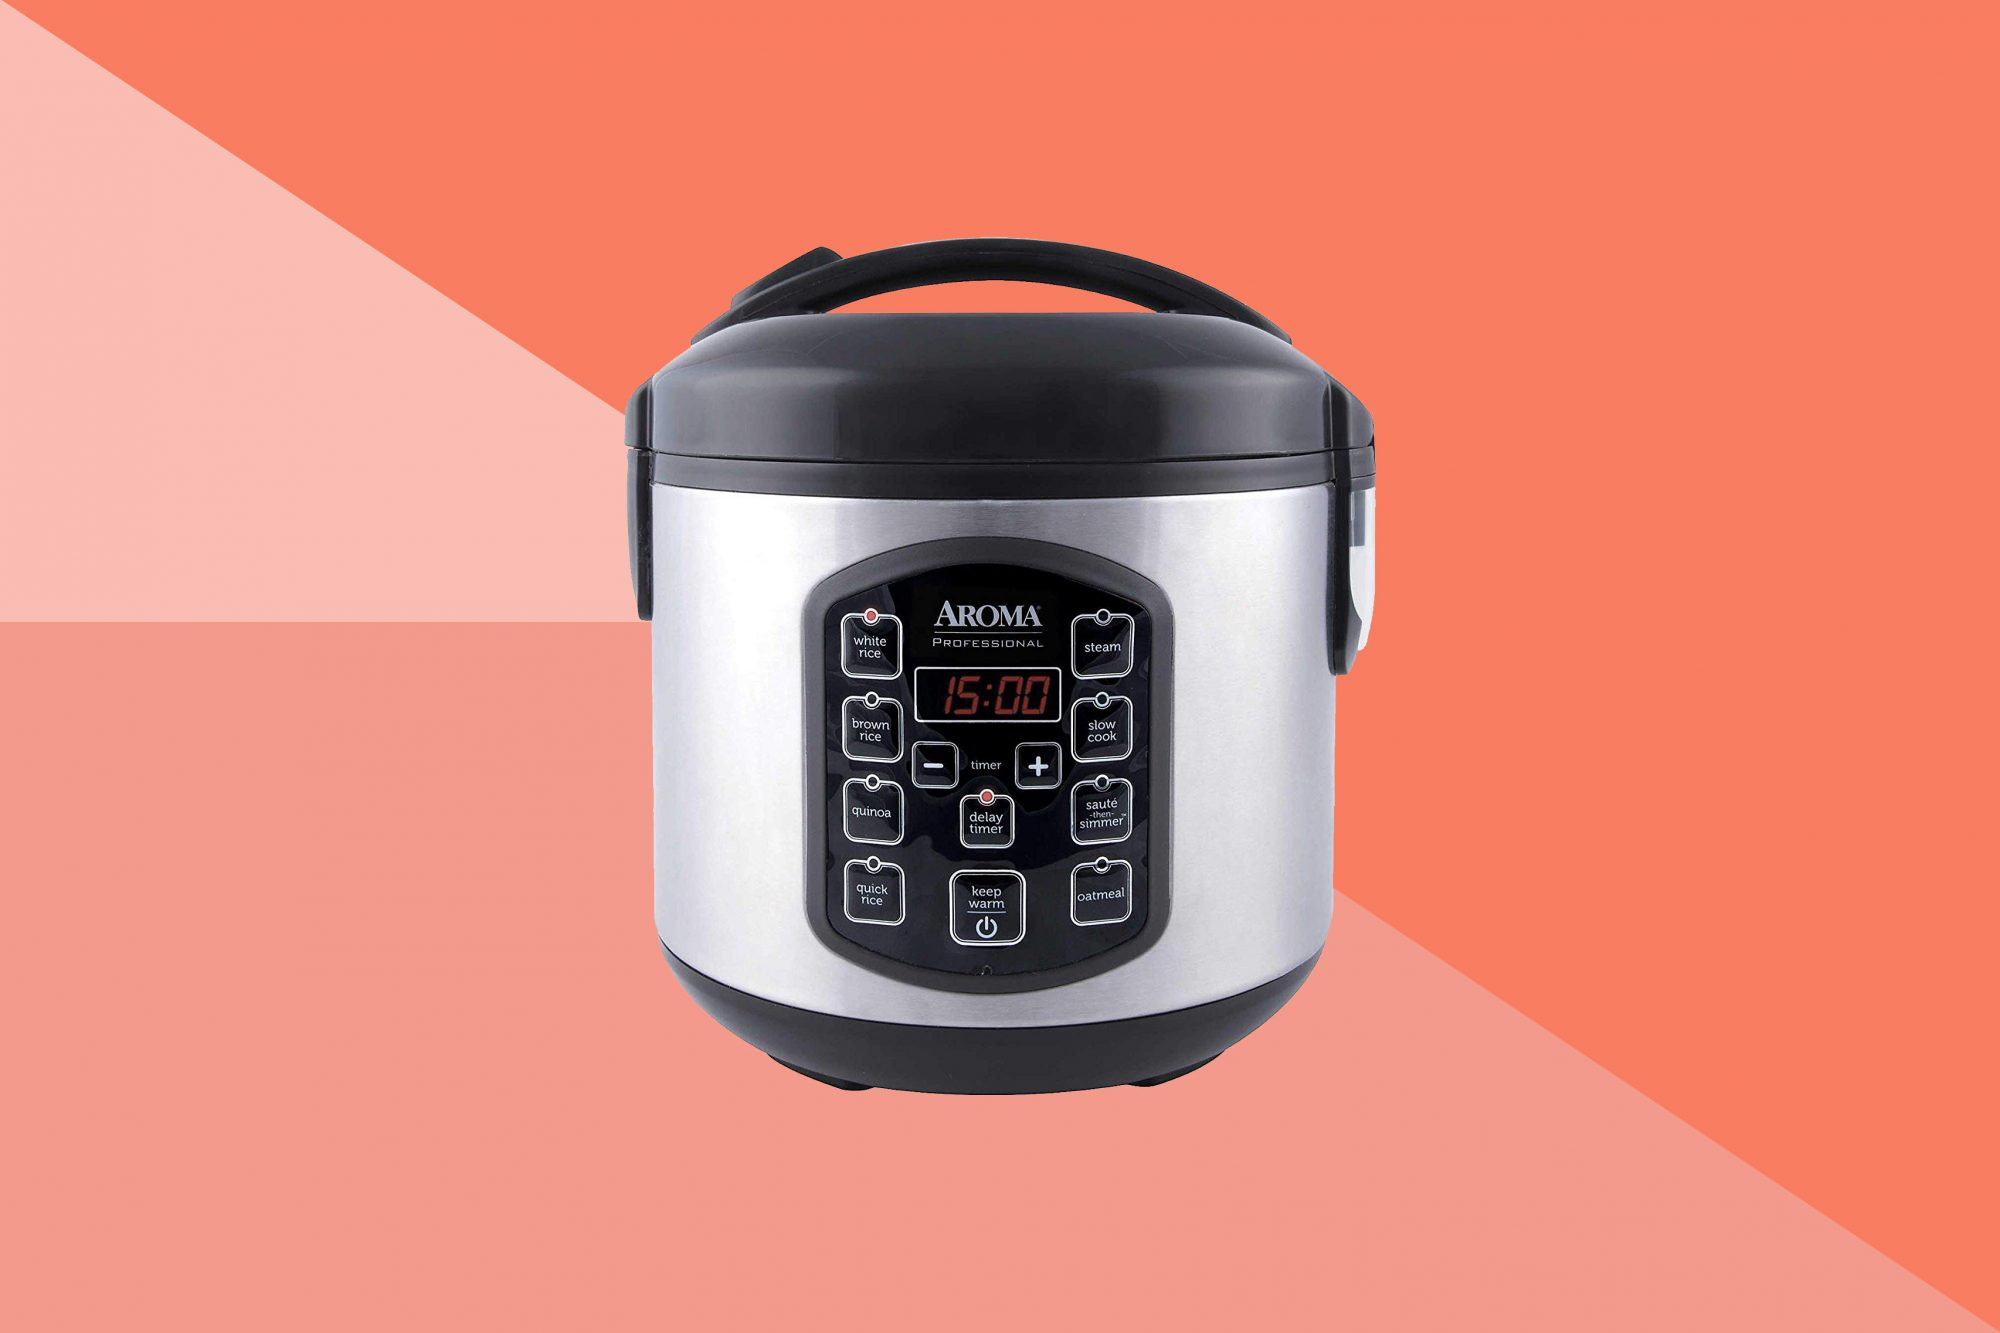 Aroma Housewares ARC-954SBD Rice Cooker